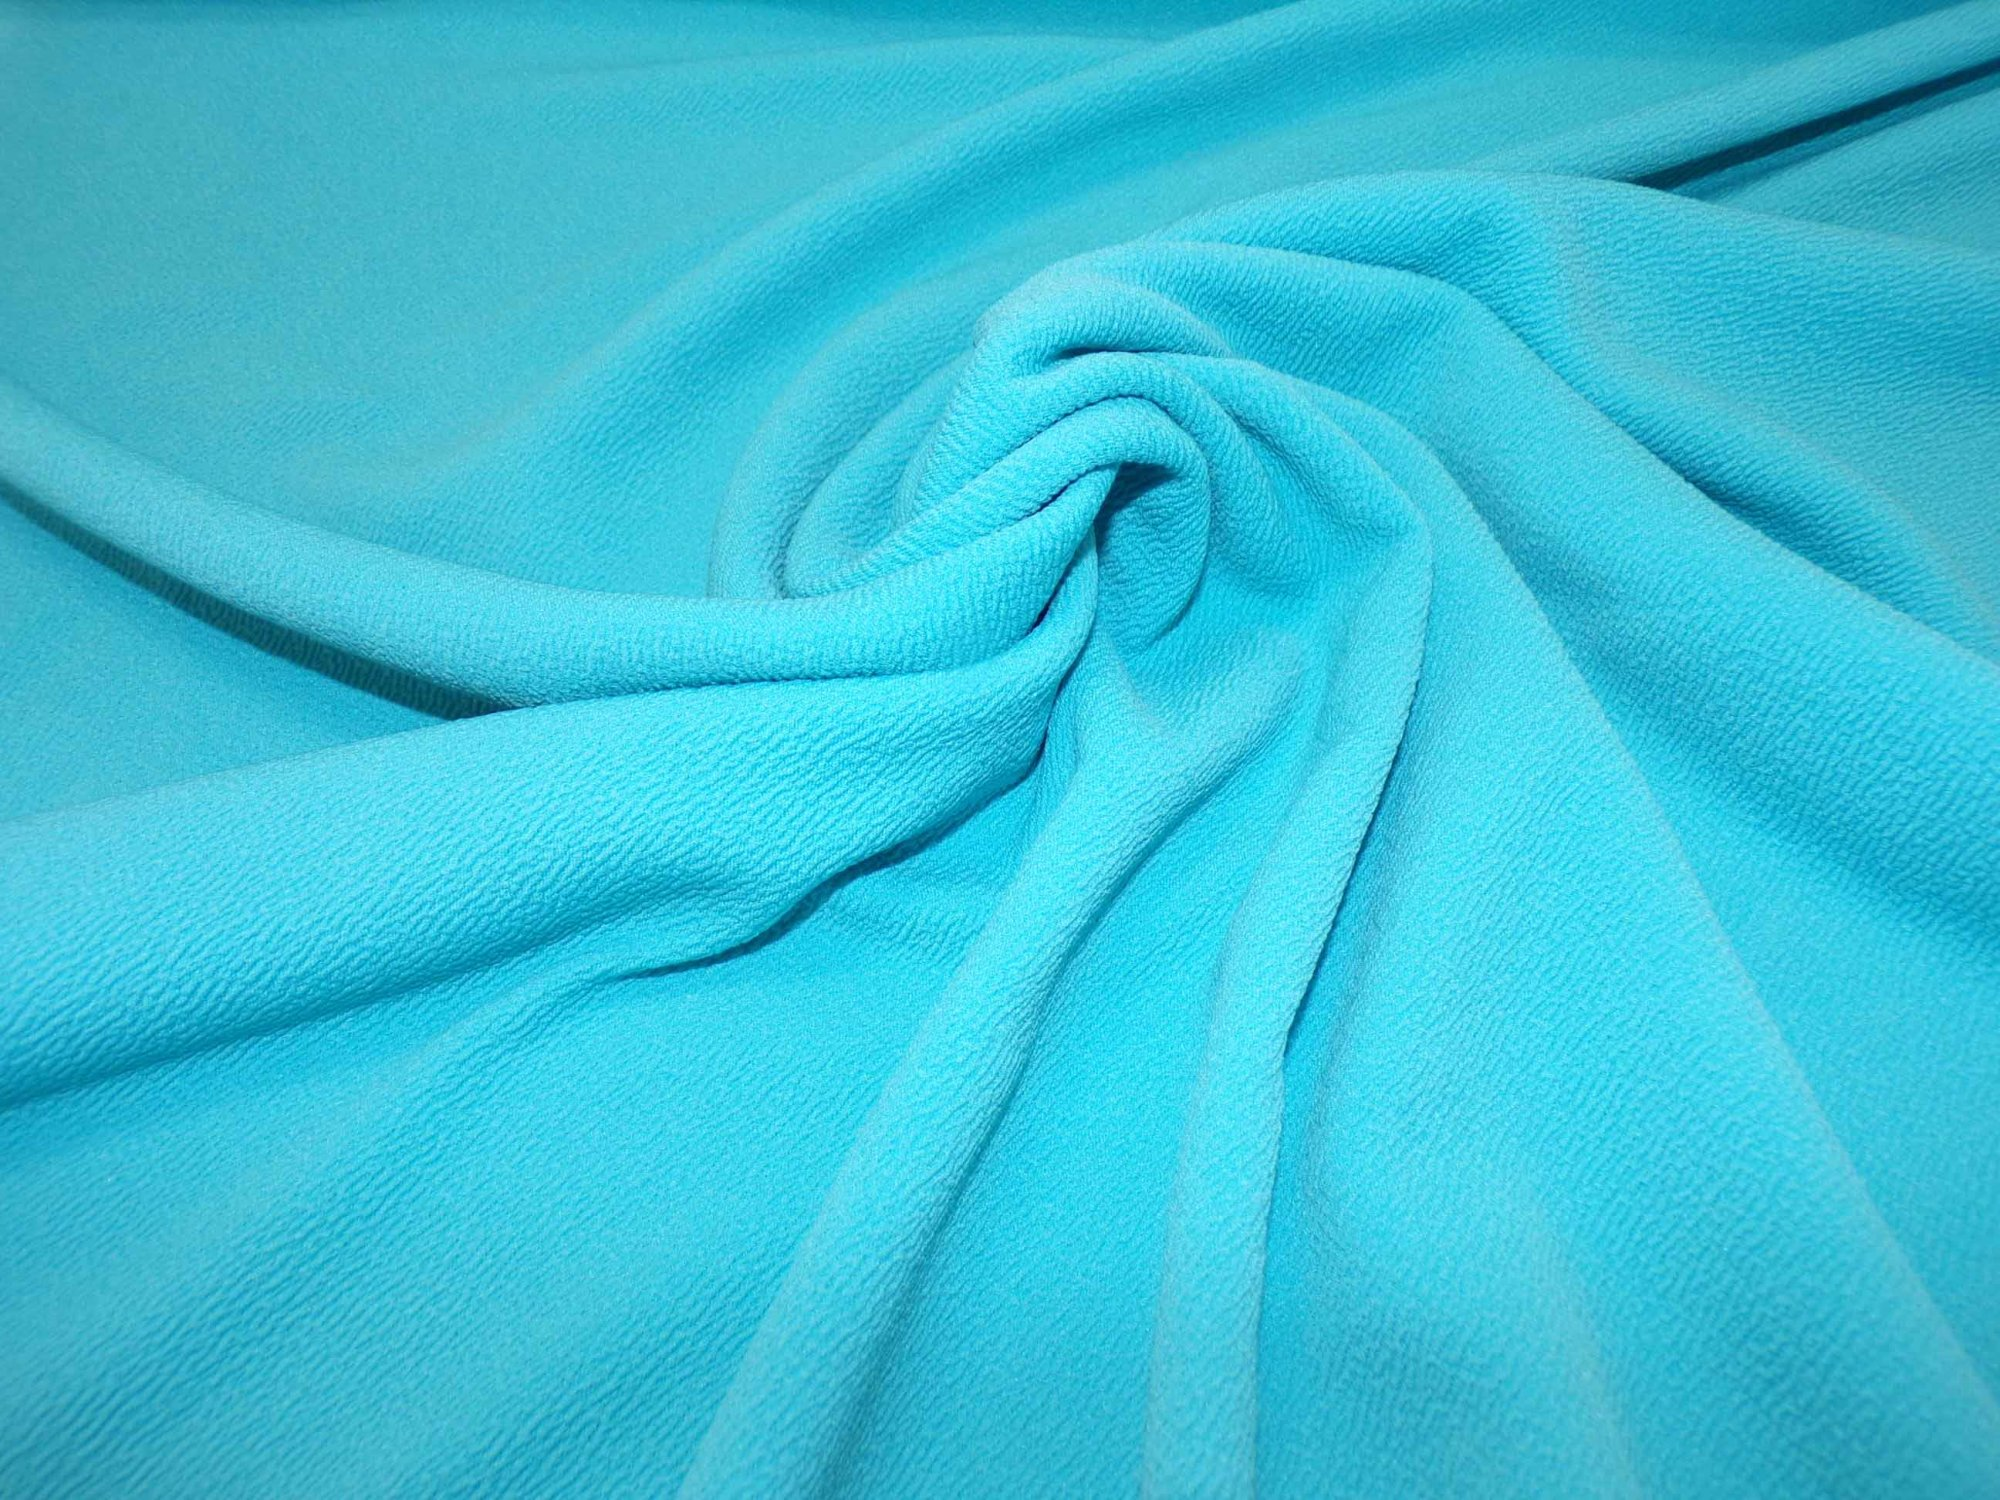 Liverpool Knit - Turquoise